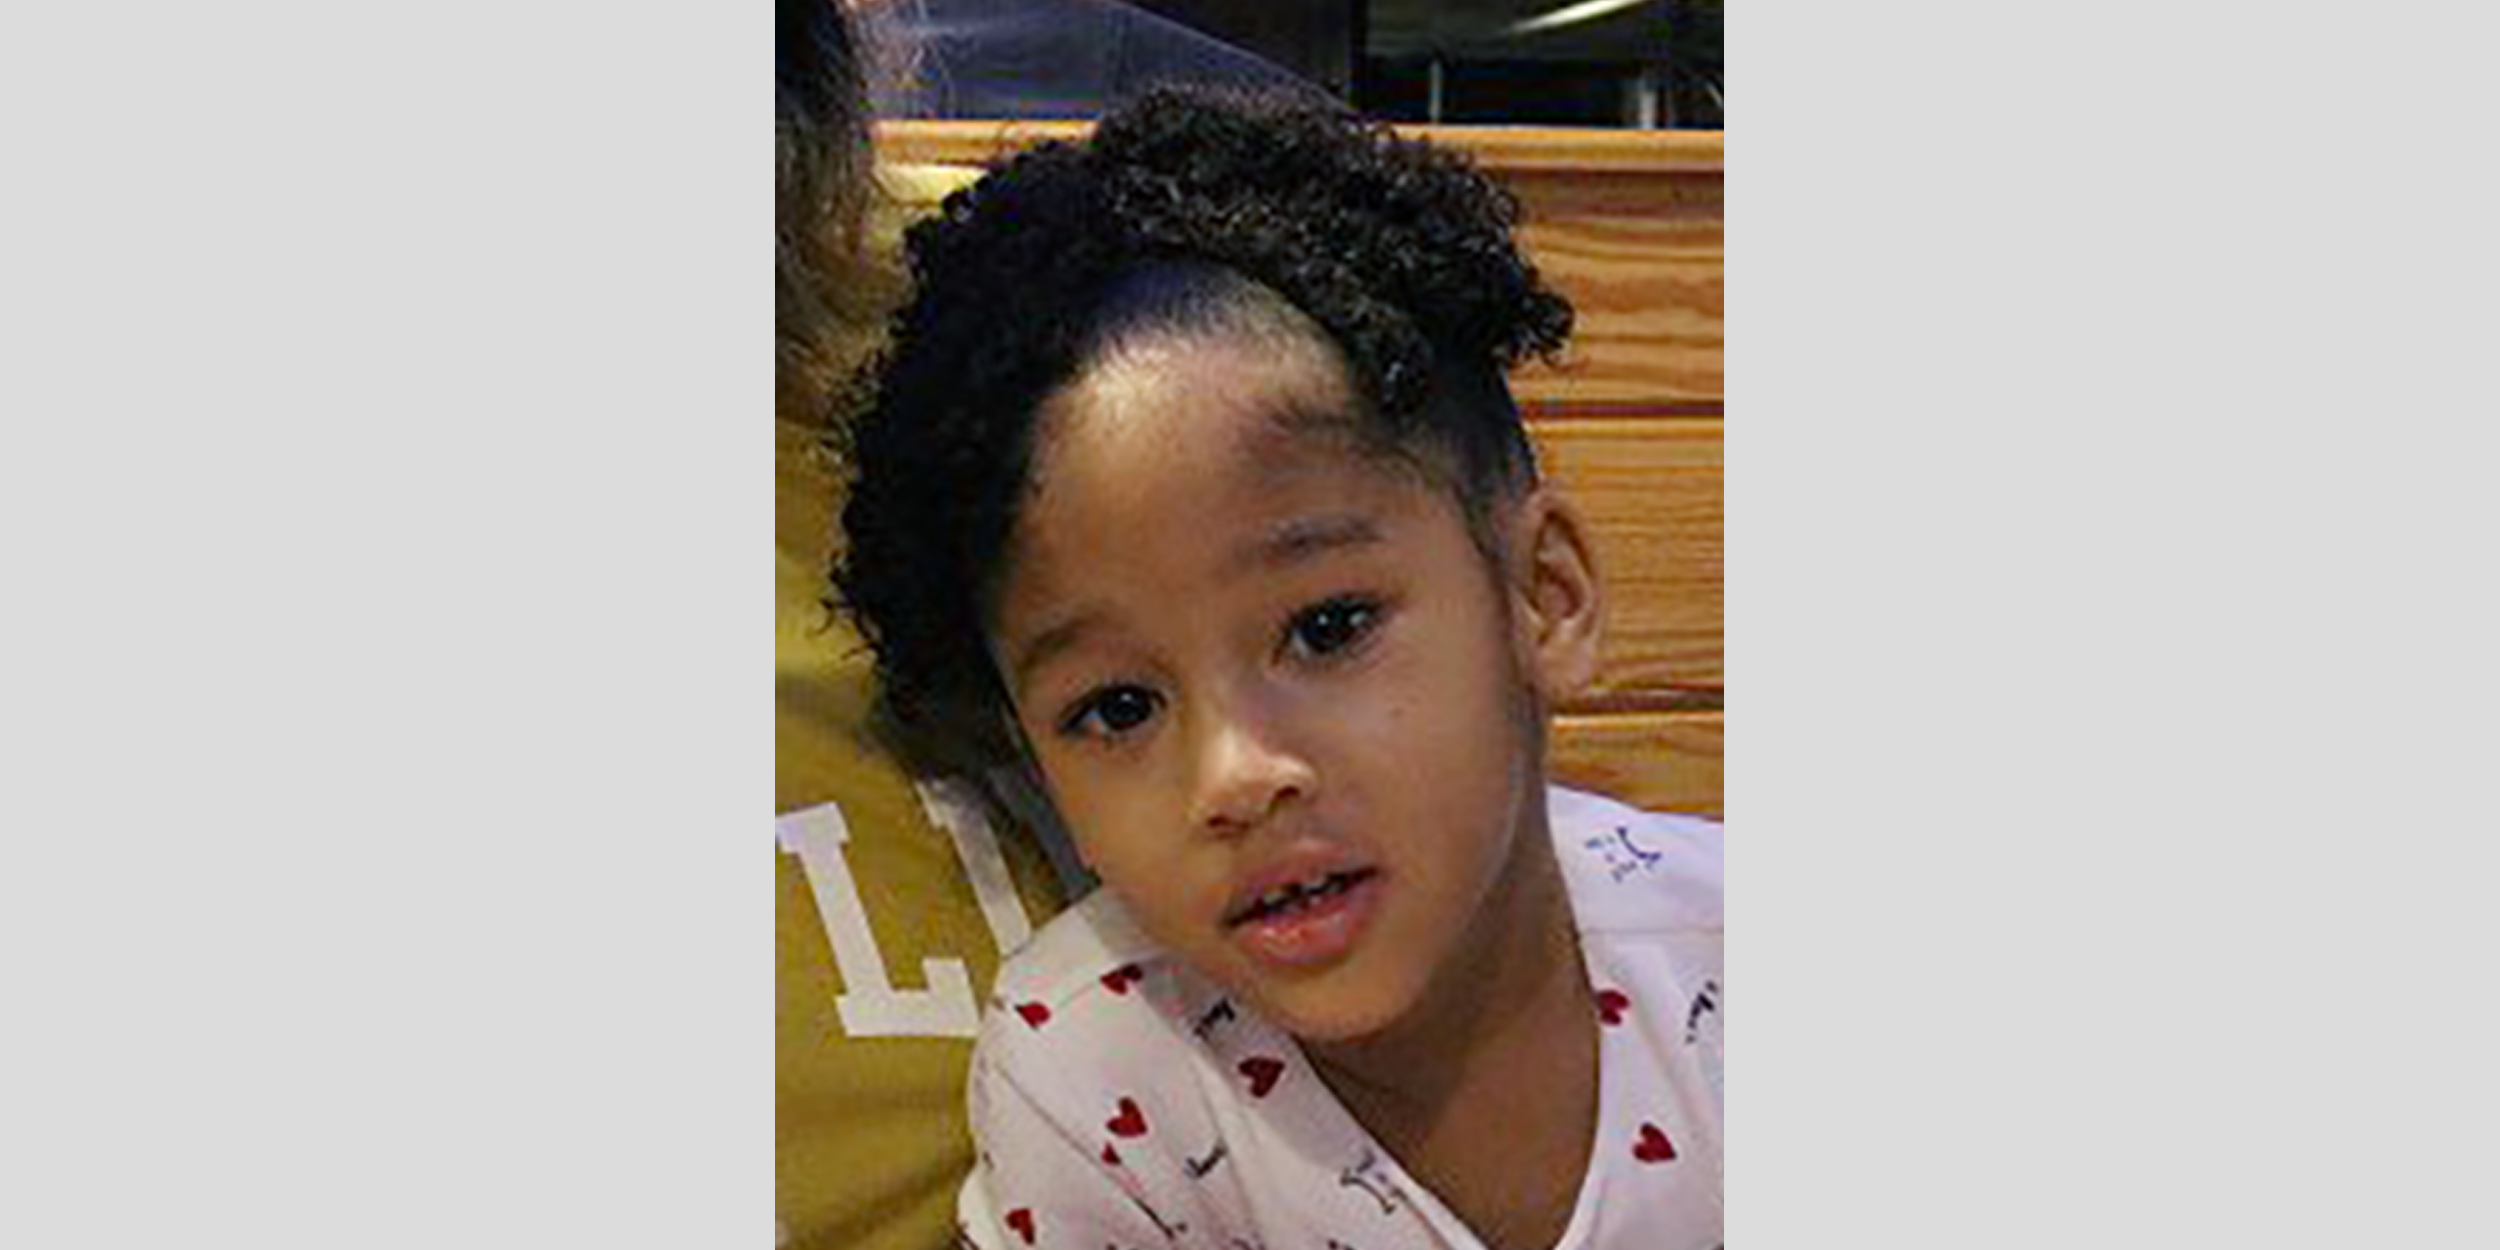 Amber Alert issued for 4-year-old Houston girl allegedly